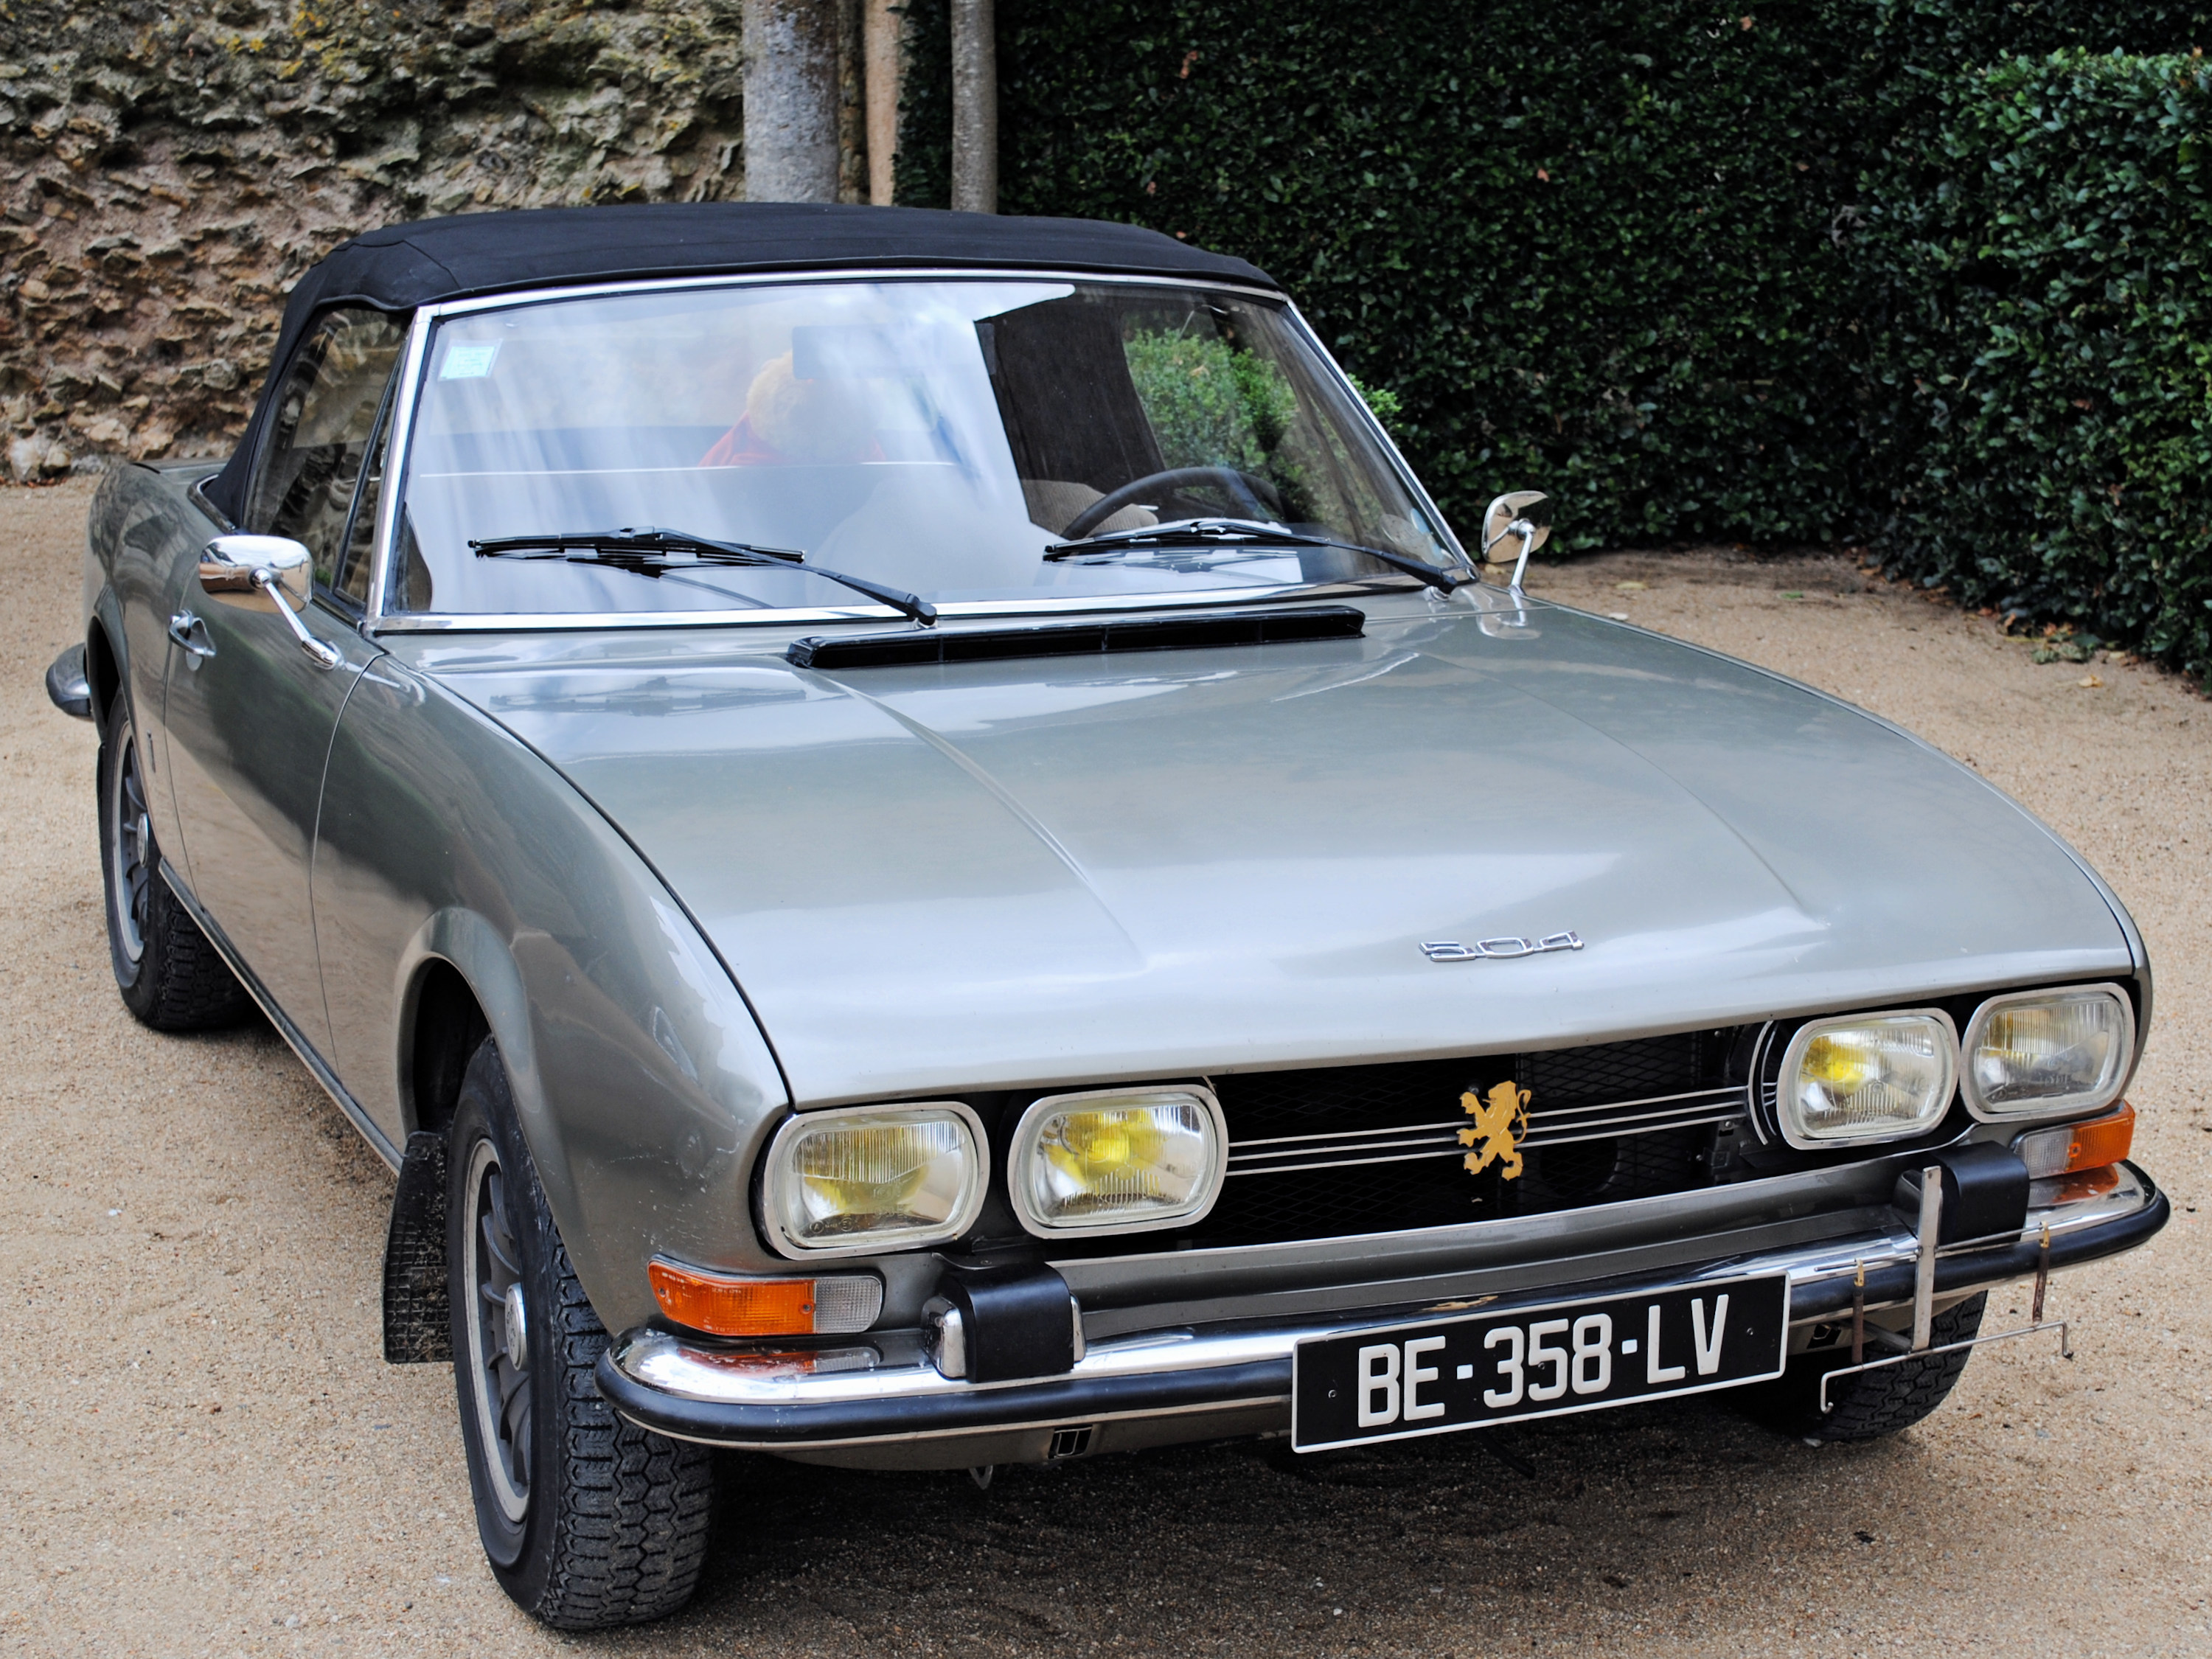 Peugeot 504 Convertible Cabriolet By Kordouane Photography Transportation